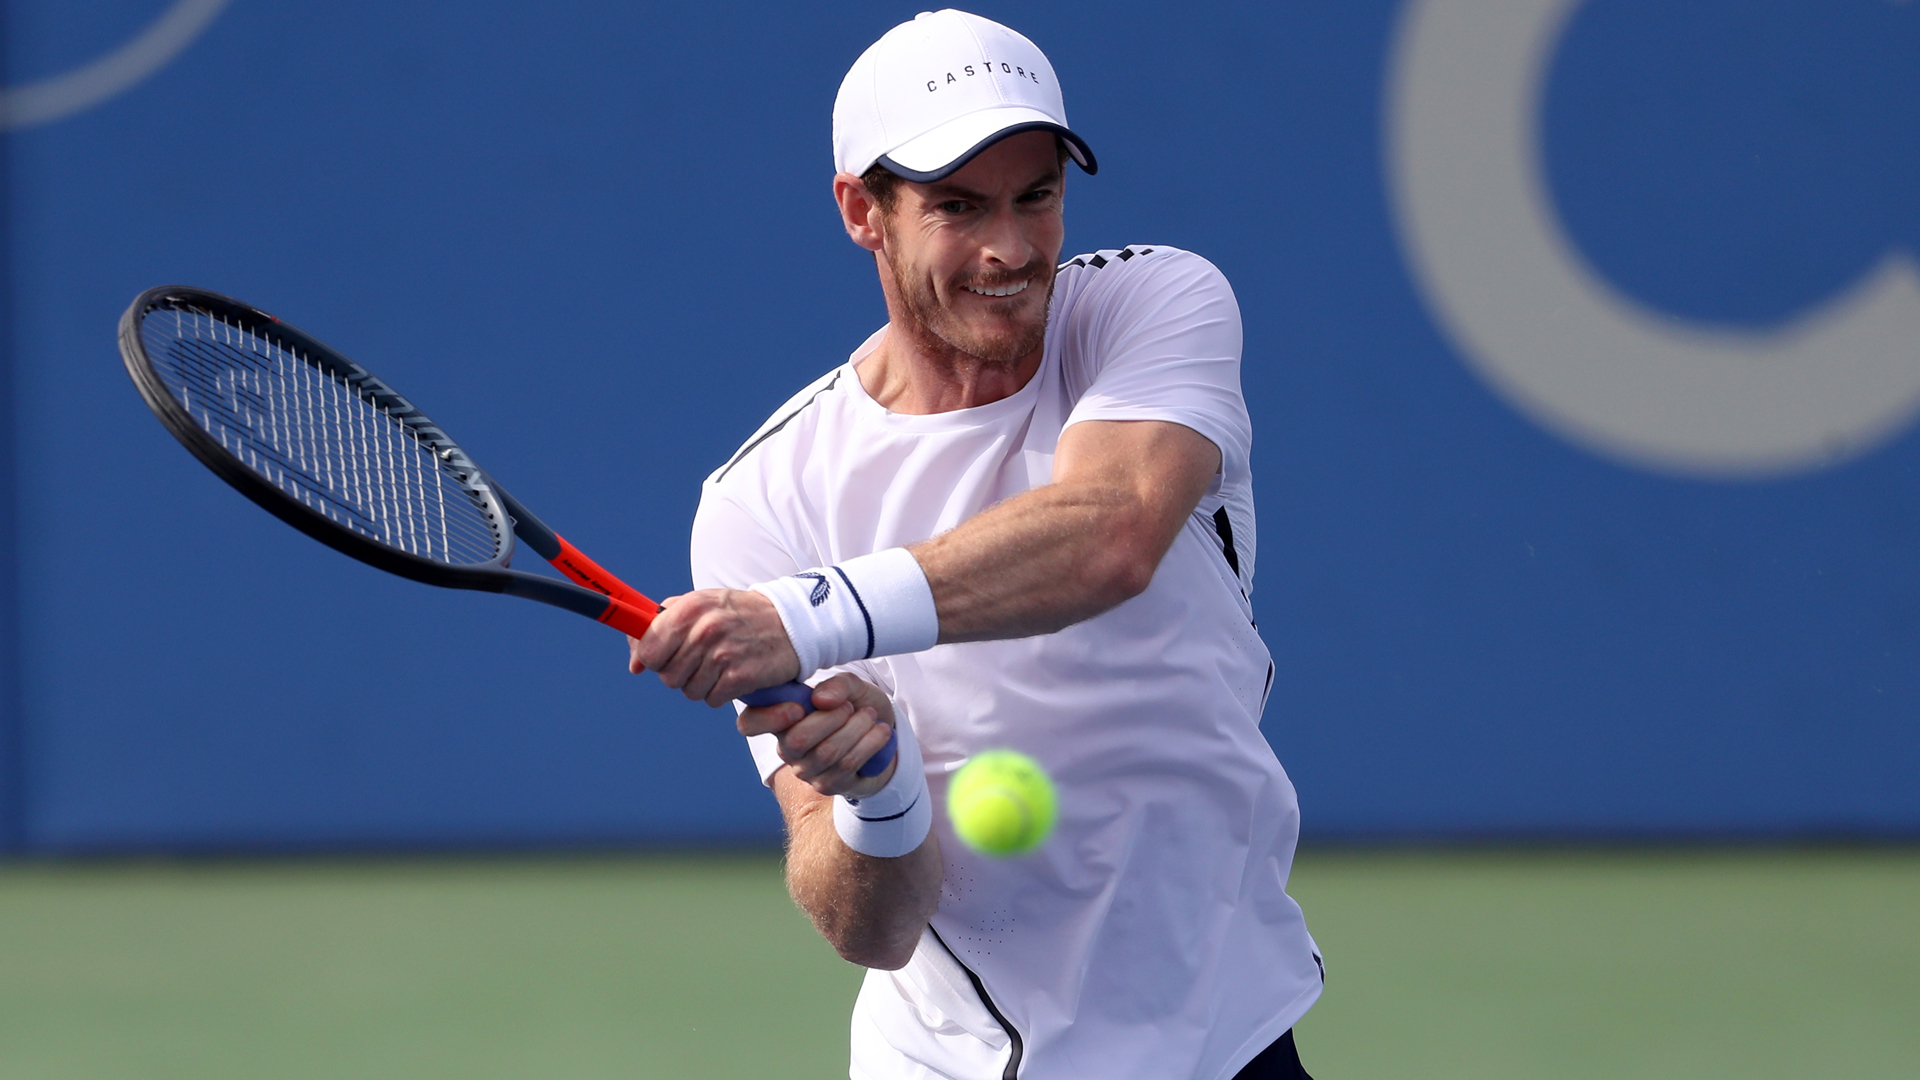 Andy Murray faces tricky draw in singles return at Cincinnati Masters